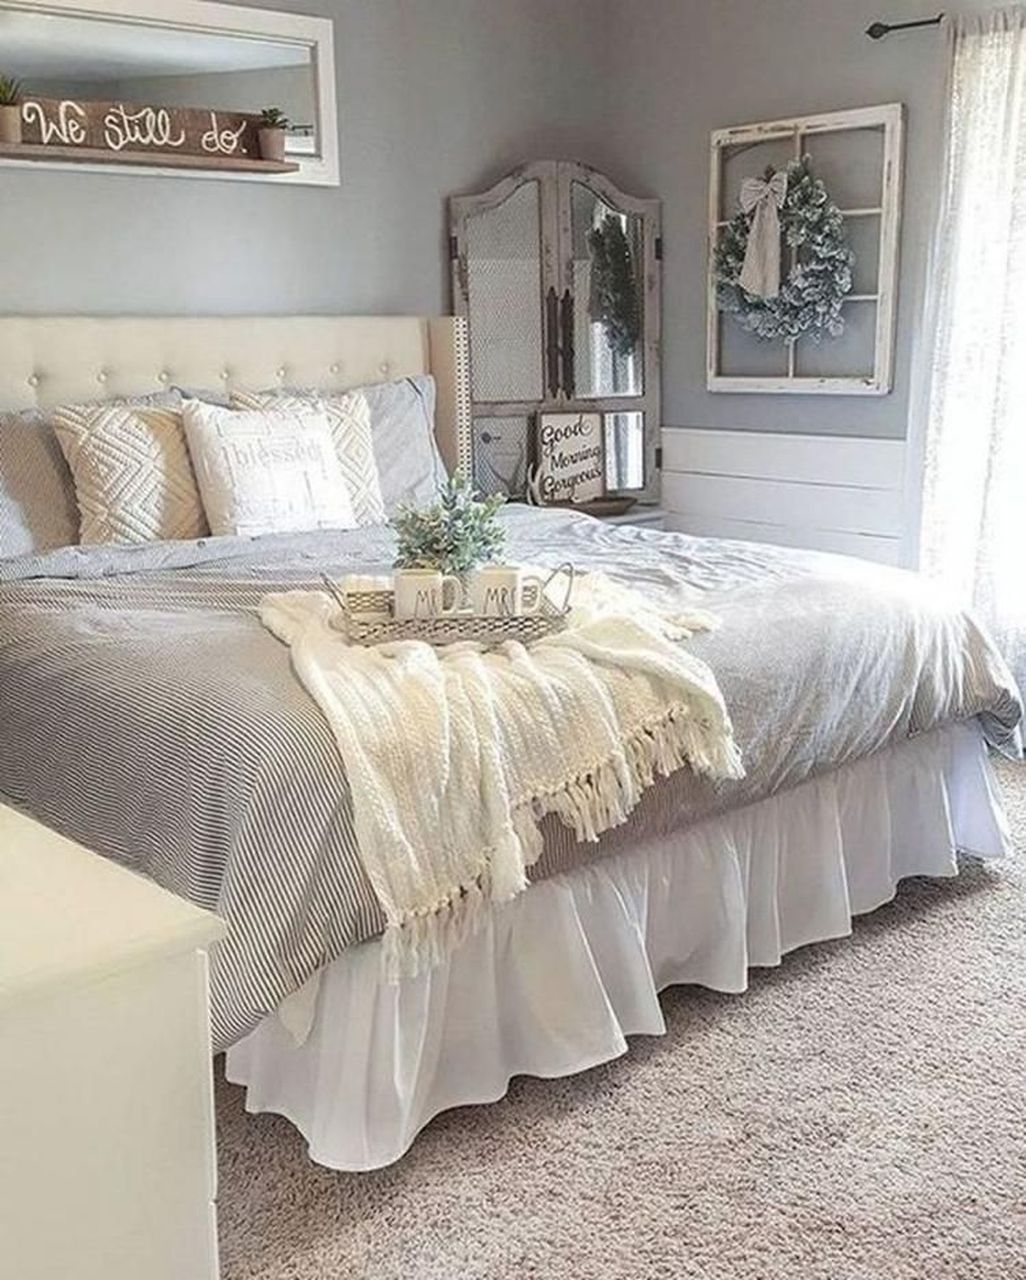 36 Relaxing Neutral Bedroom Designs: 47 Inspiring Modern Farmhouse Bedroom Decor Ideas